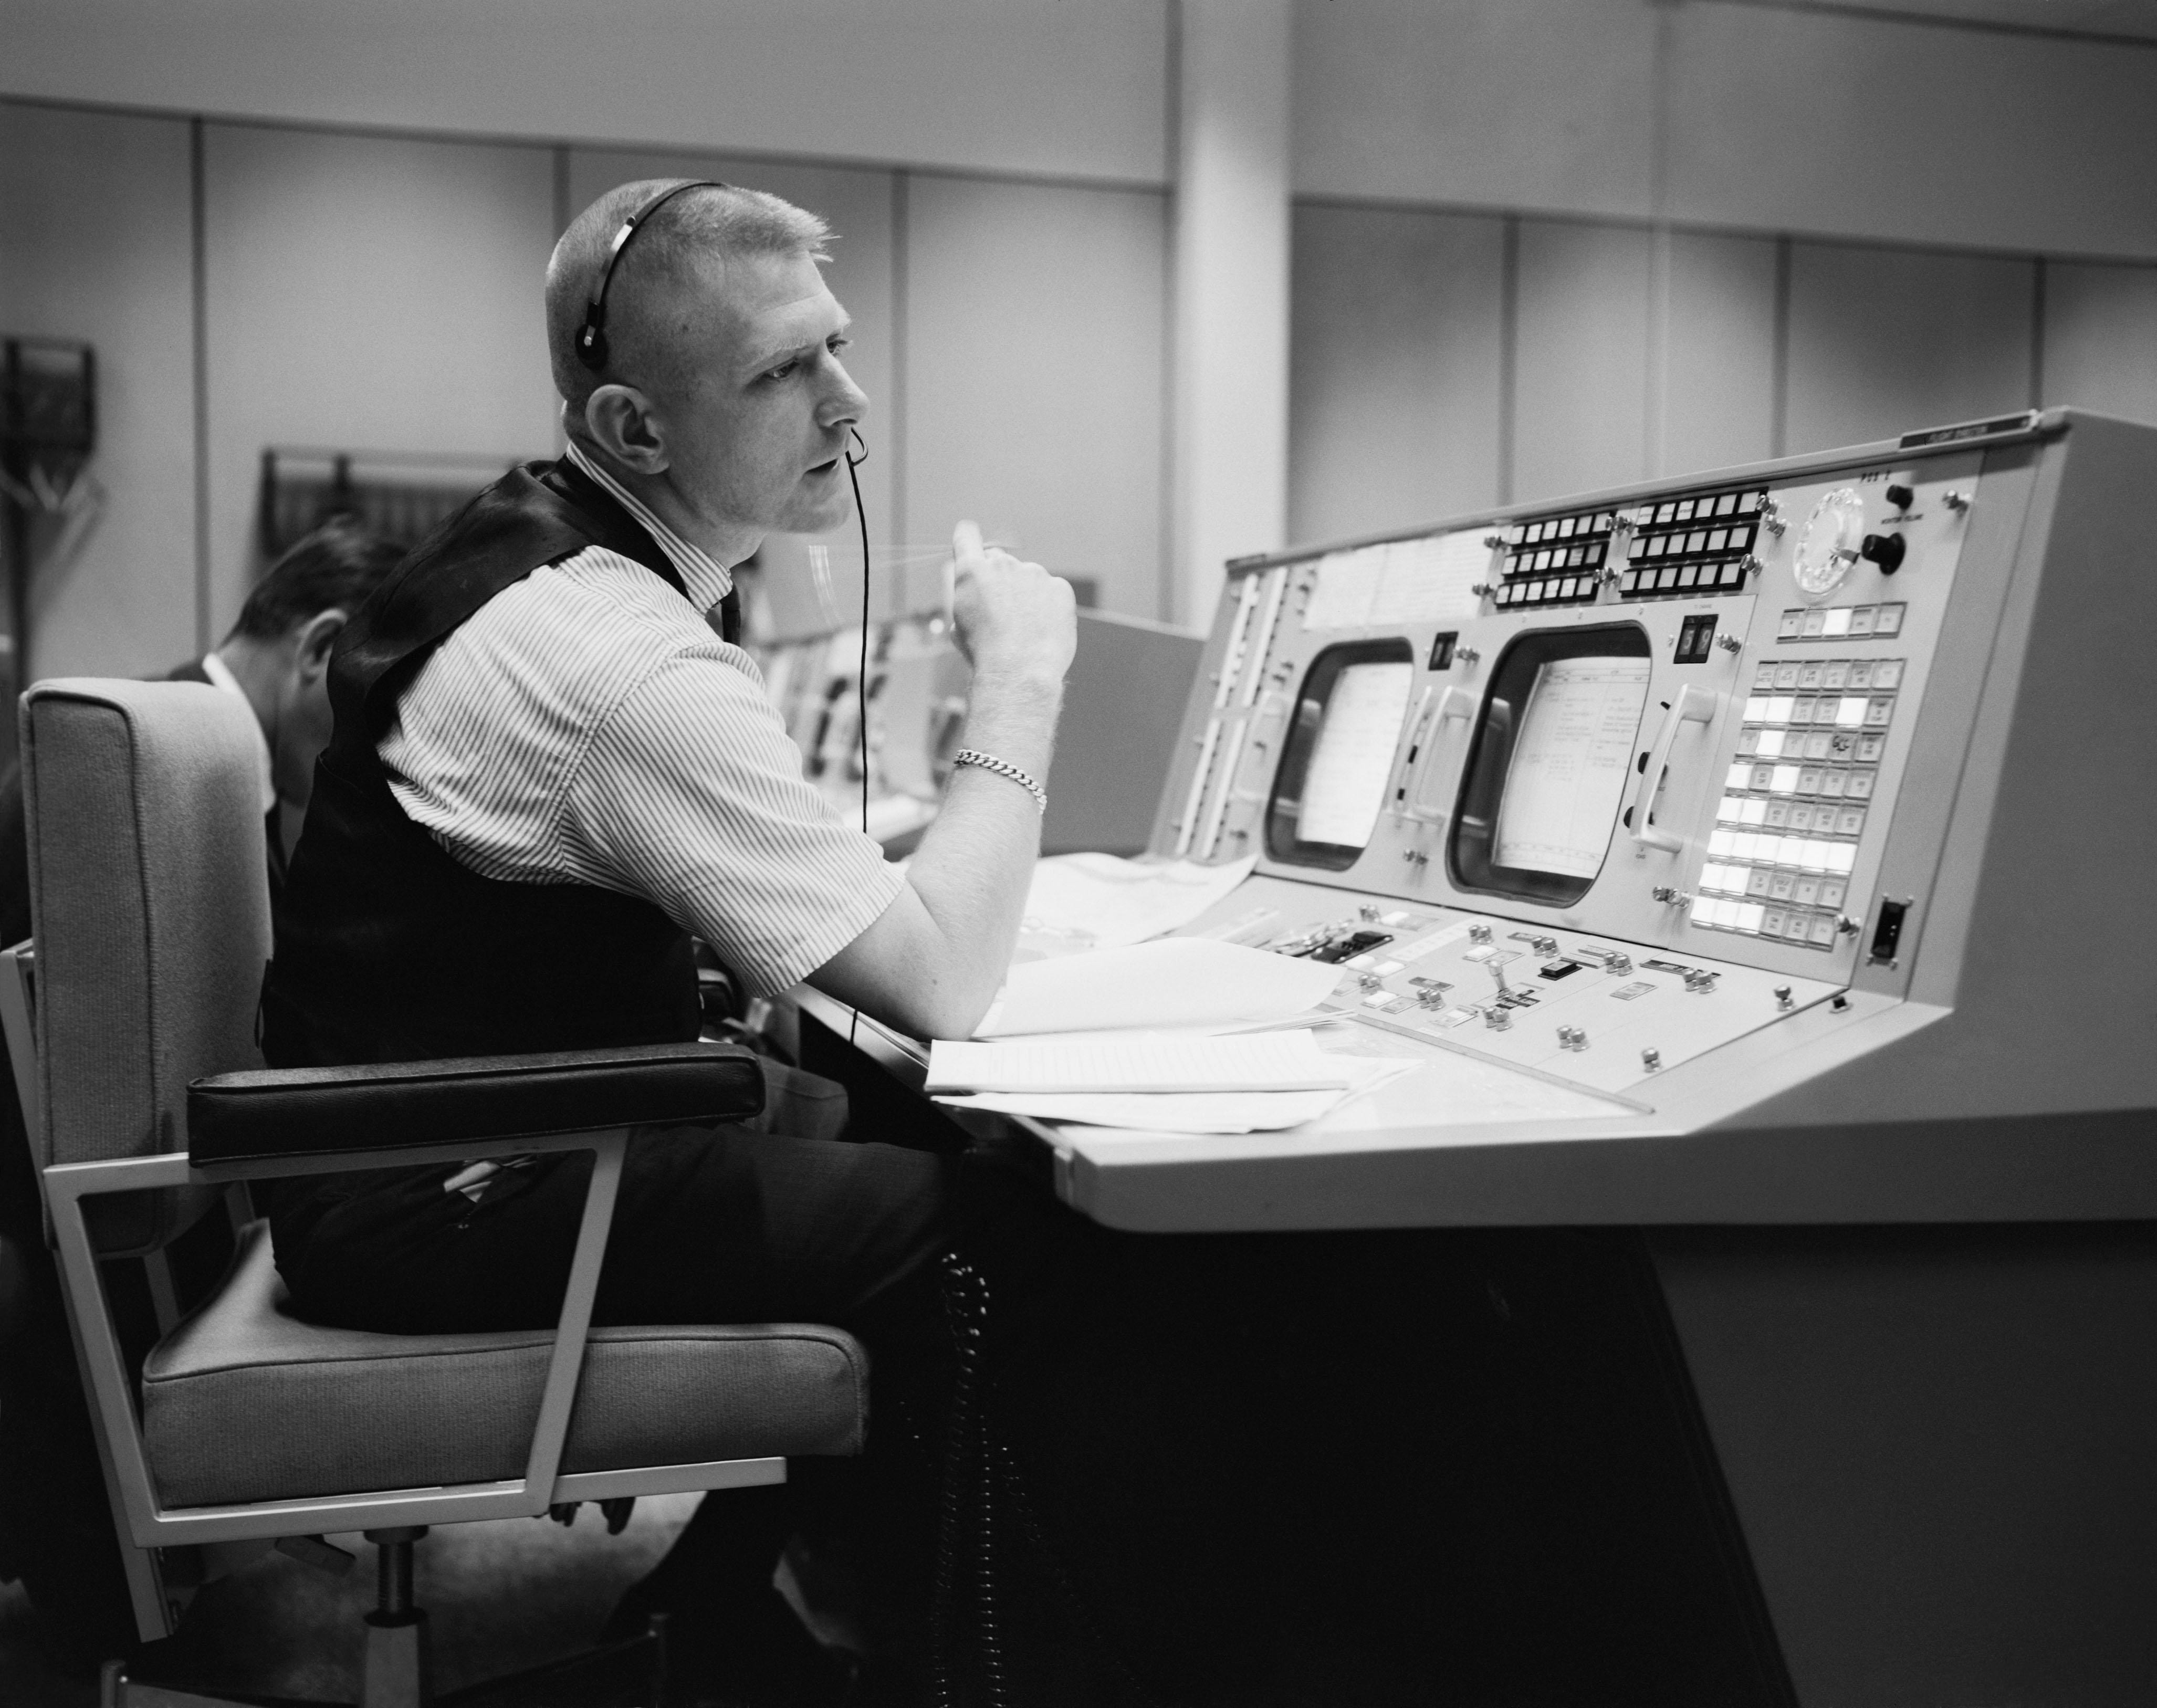 leadership in apollo 13 Possibly the greatest leadership movie of them all, the true story of apollo 13 also boasts one of the movies' most compelling leaders in the steely, waistcoated flight director gene kranz, memorably portrayed by ed harris.